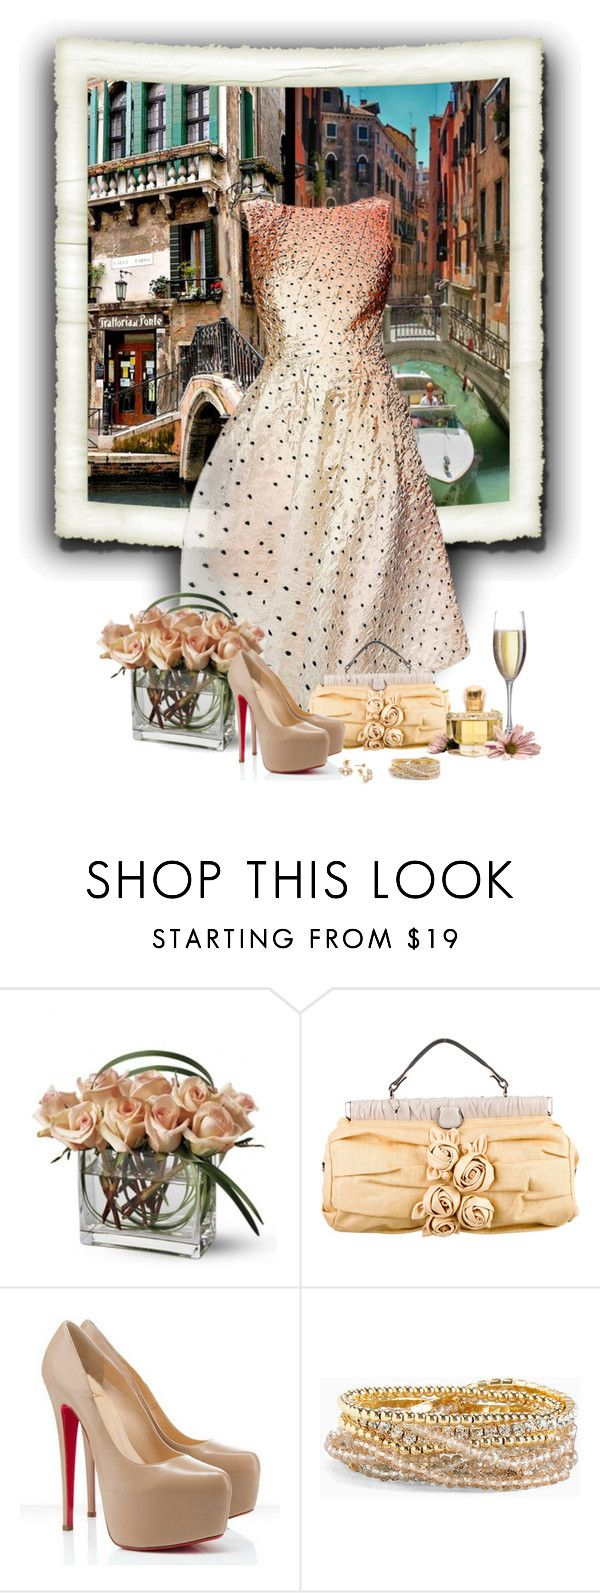 """Veneza (Itália)..."" by sil-engler ❤ liked on Polyvore featuring Lela Rose, Valentino, Christian Louboutin and Torrid"